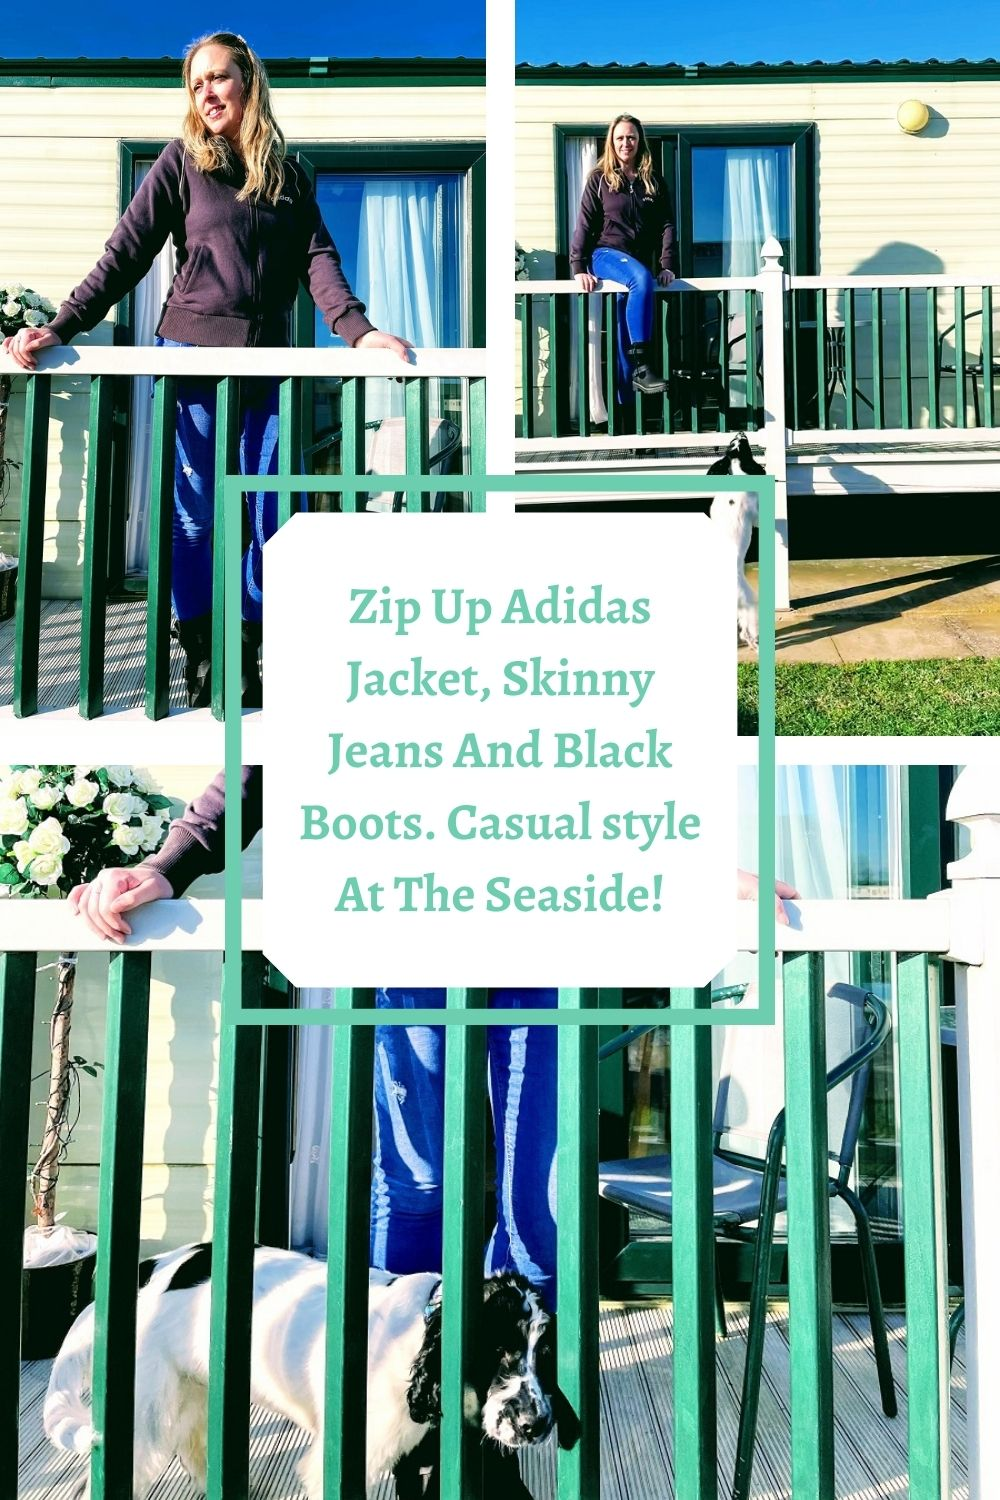 Zip Up Adidas Jacket, Skinny Jeans And Black Boots. Casual style At The Seaside!